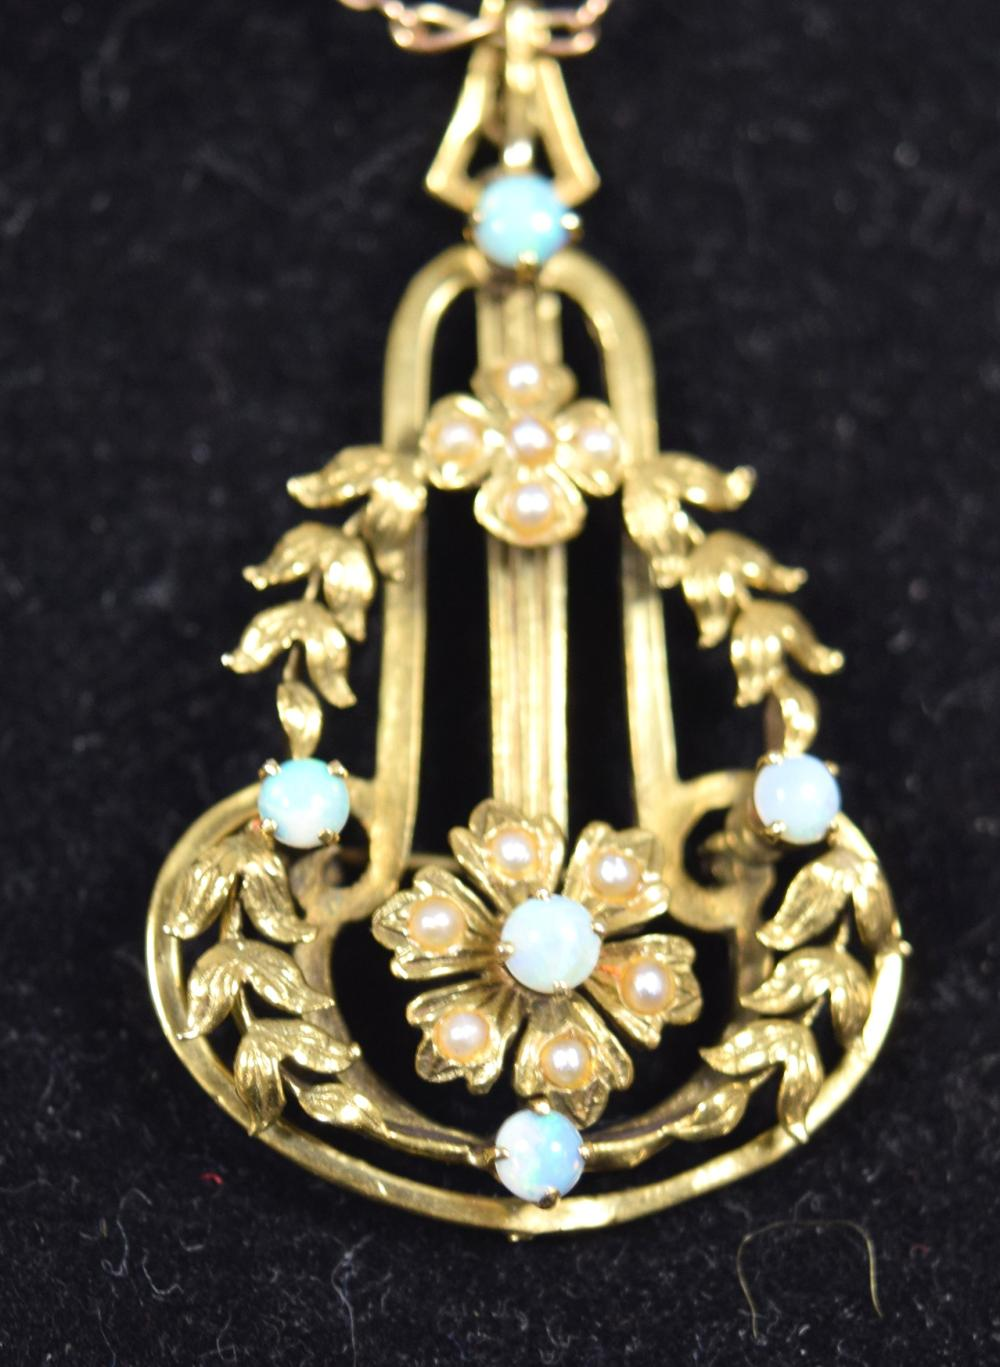 14KT GOLD, OPAL & SEED PEARL PEARL NECKLACE: